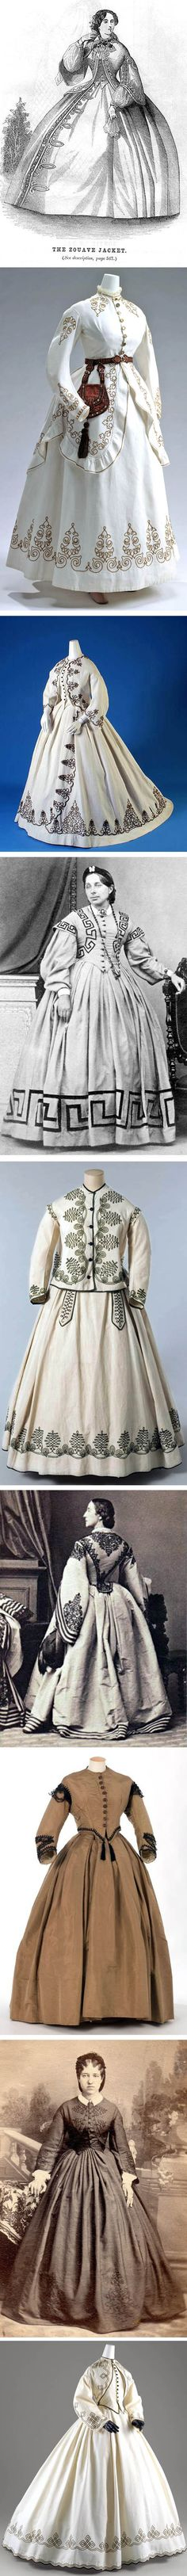 The Zouave dress was very popular in Europe and America in the 1850s-60s. The Zouaves were a French light infantry regiment that served in north Africa in the mid-19th century.